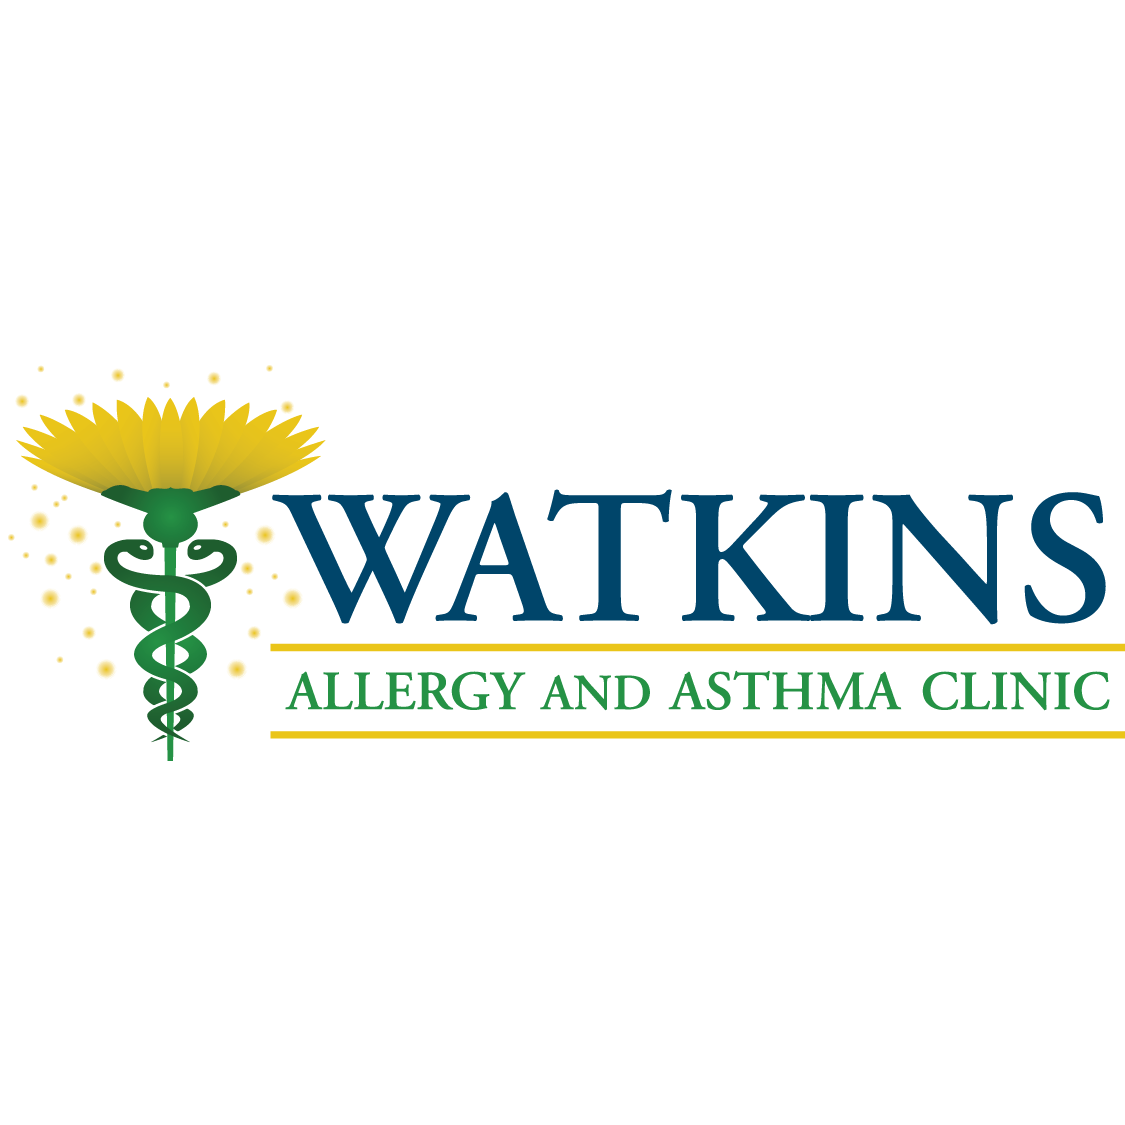 Watkins Allergy and Asthma Clinic Bartram Park Office image 5